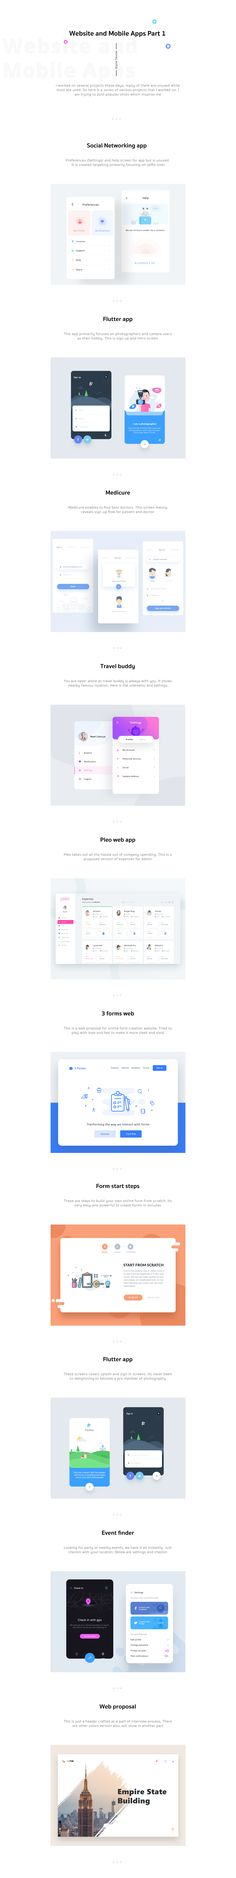 Website and Mobile Apps Part 1 on Behance